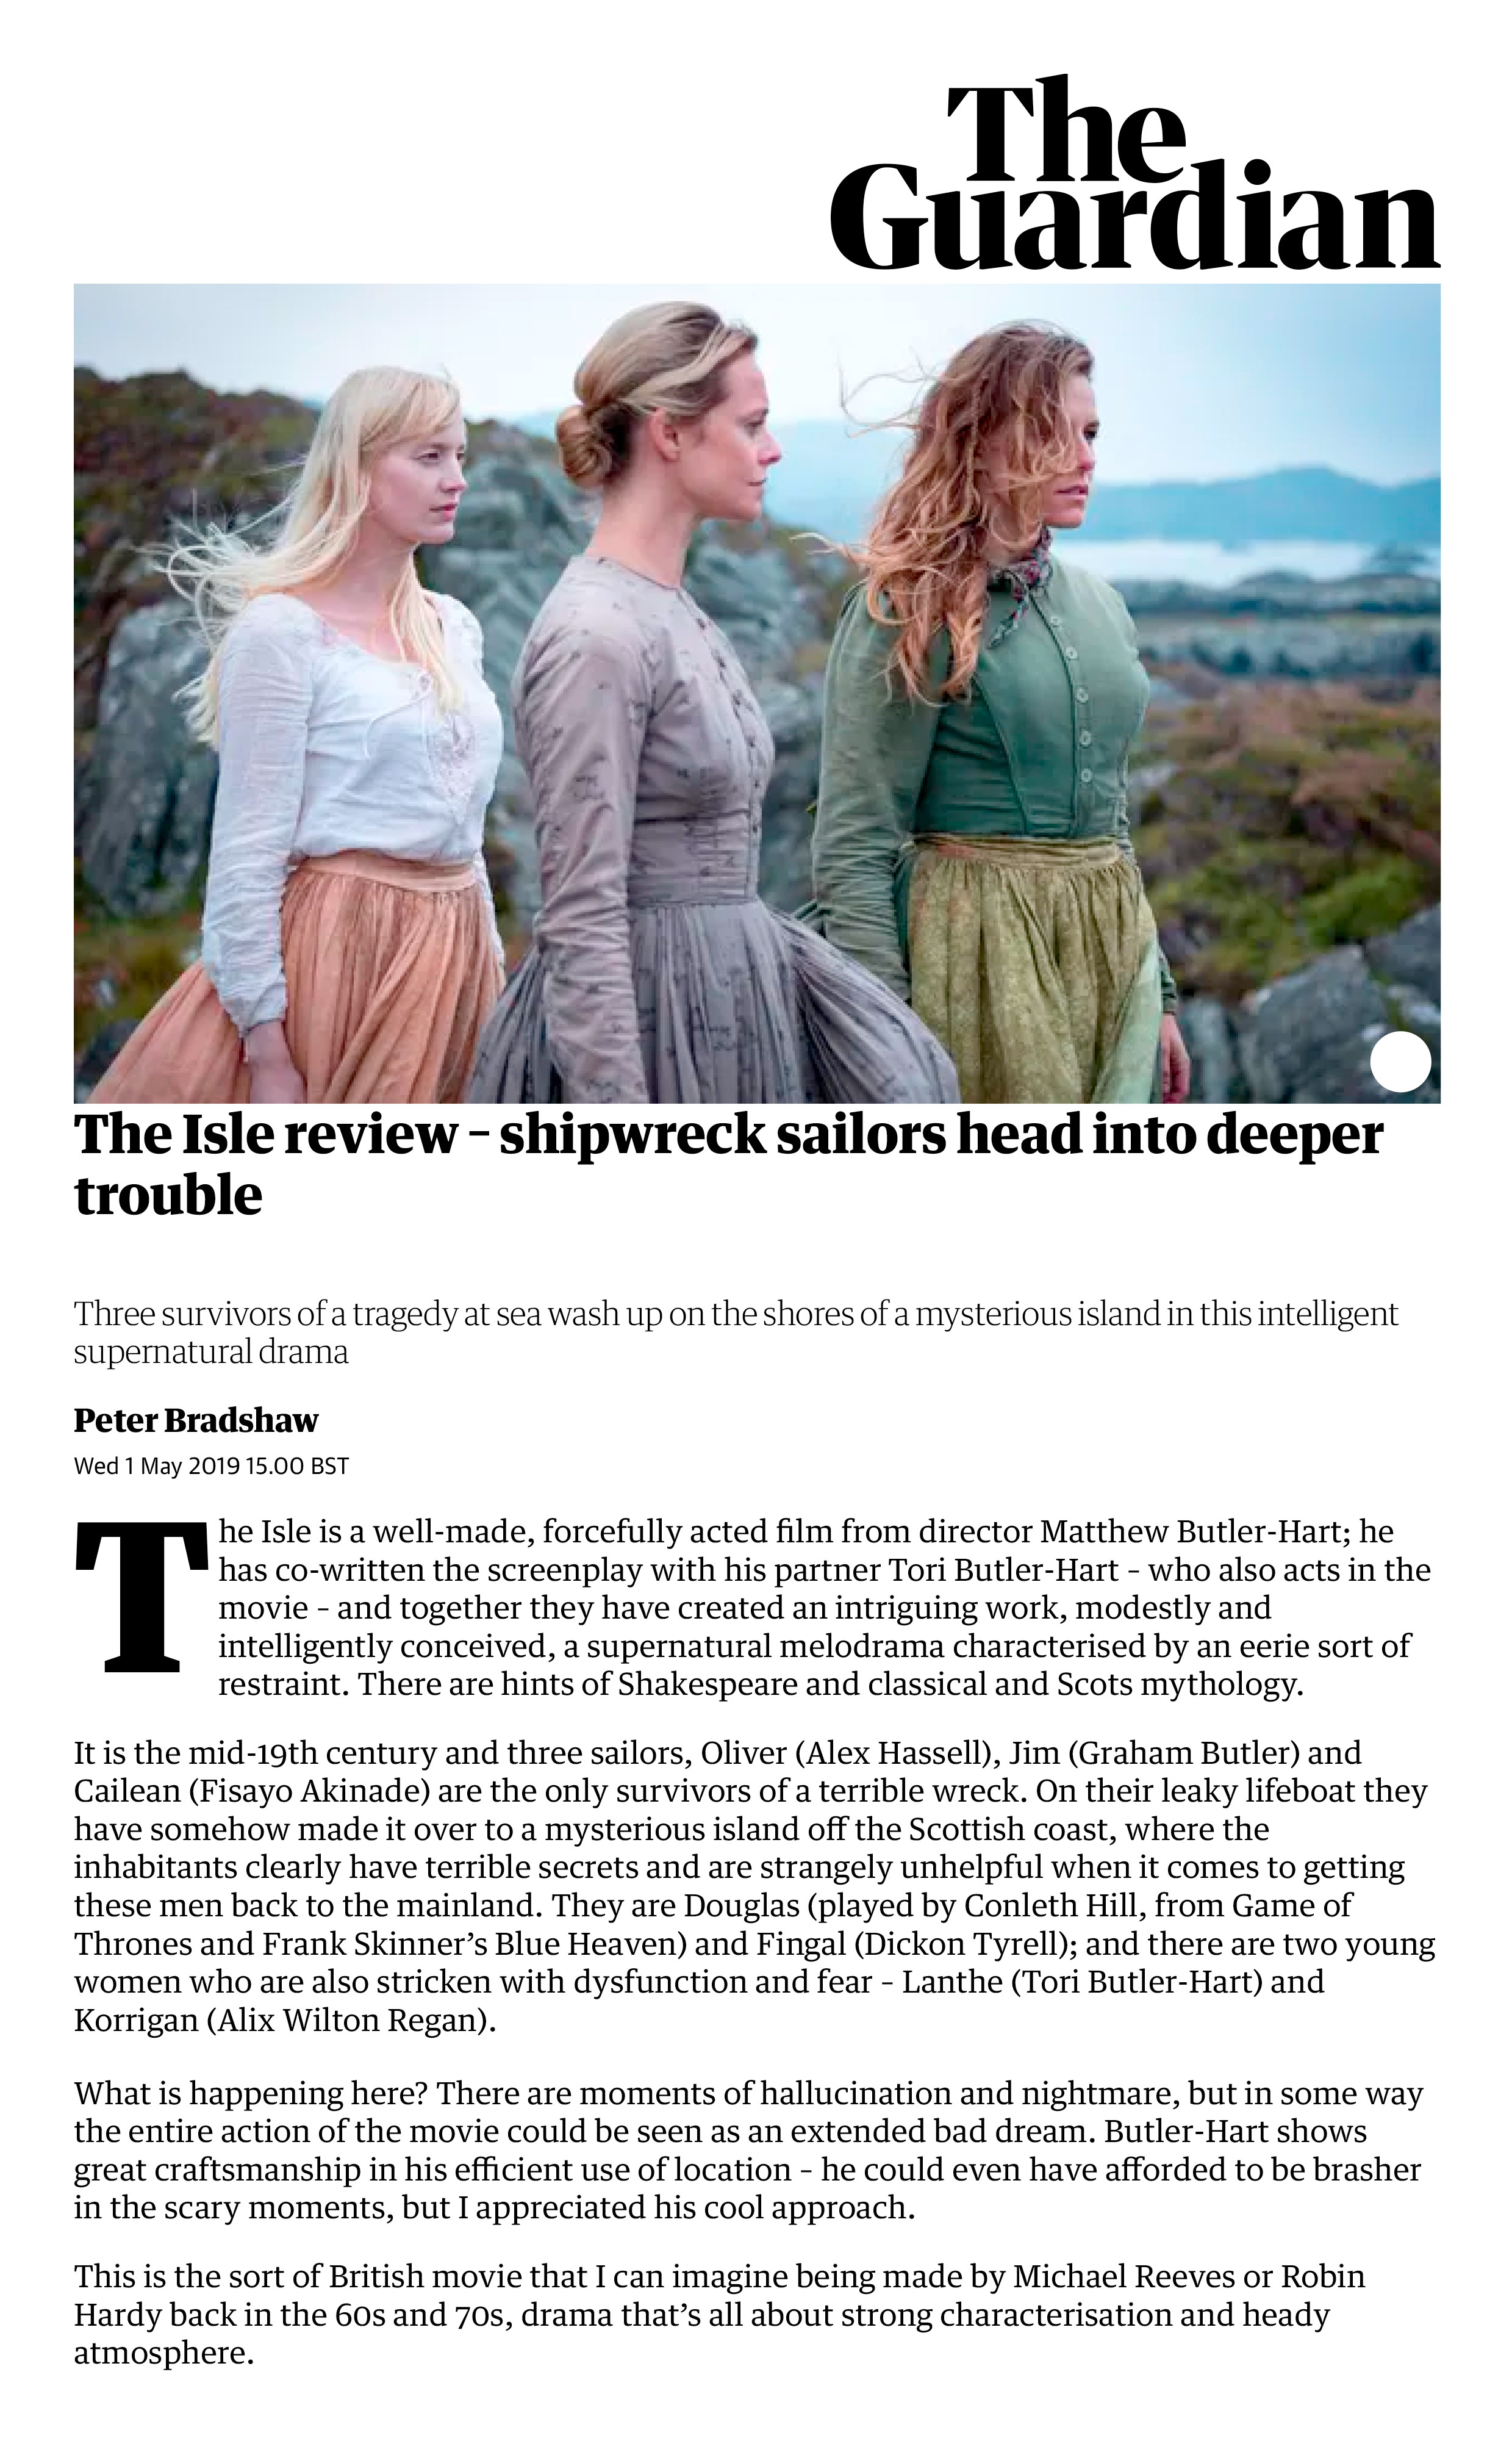 The Isle review – shipwreck sailors head into deeper trouble _ Film _ The Guardian.jpg